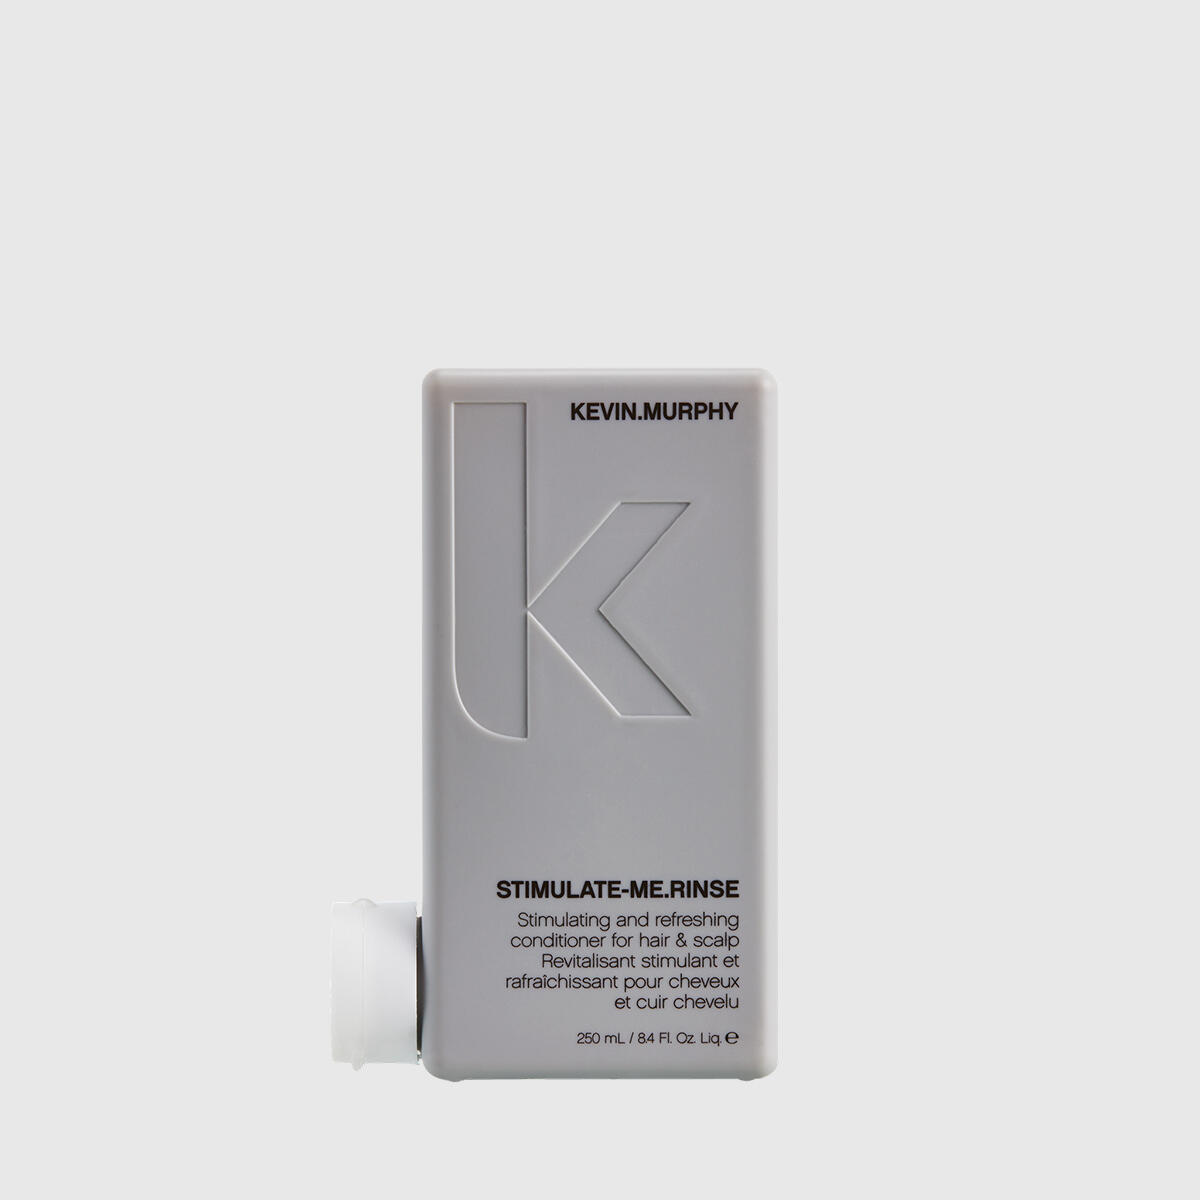 Kevin Murphy Stimulate-Me Rinse null